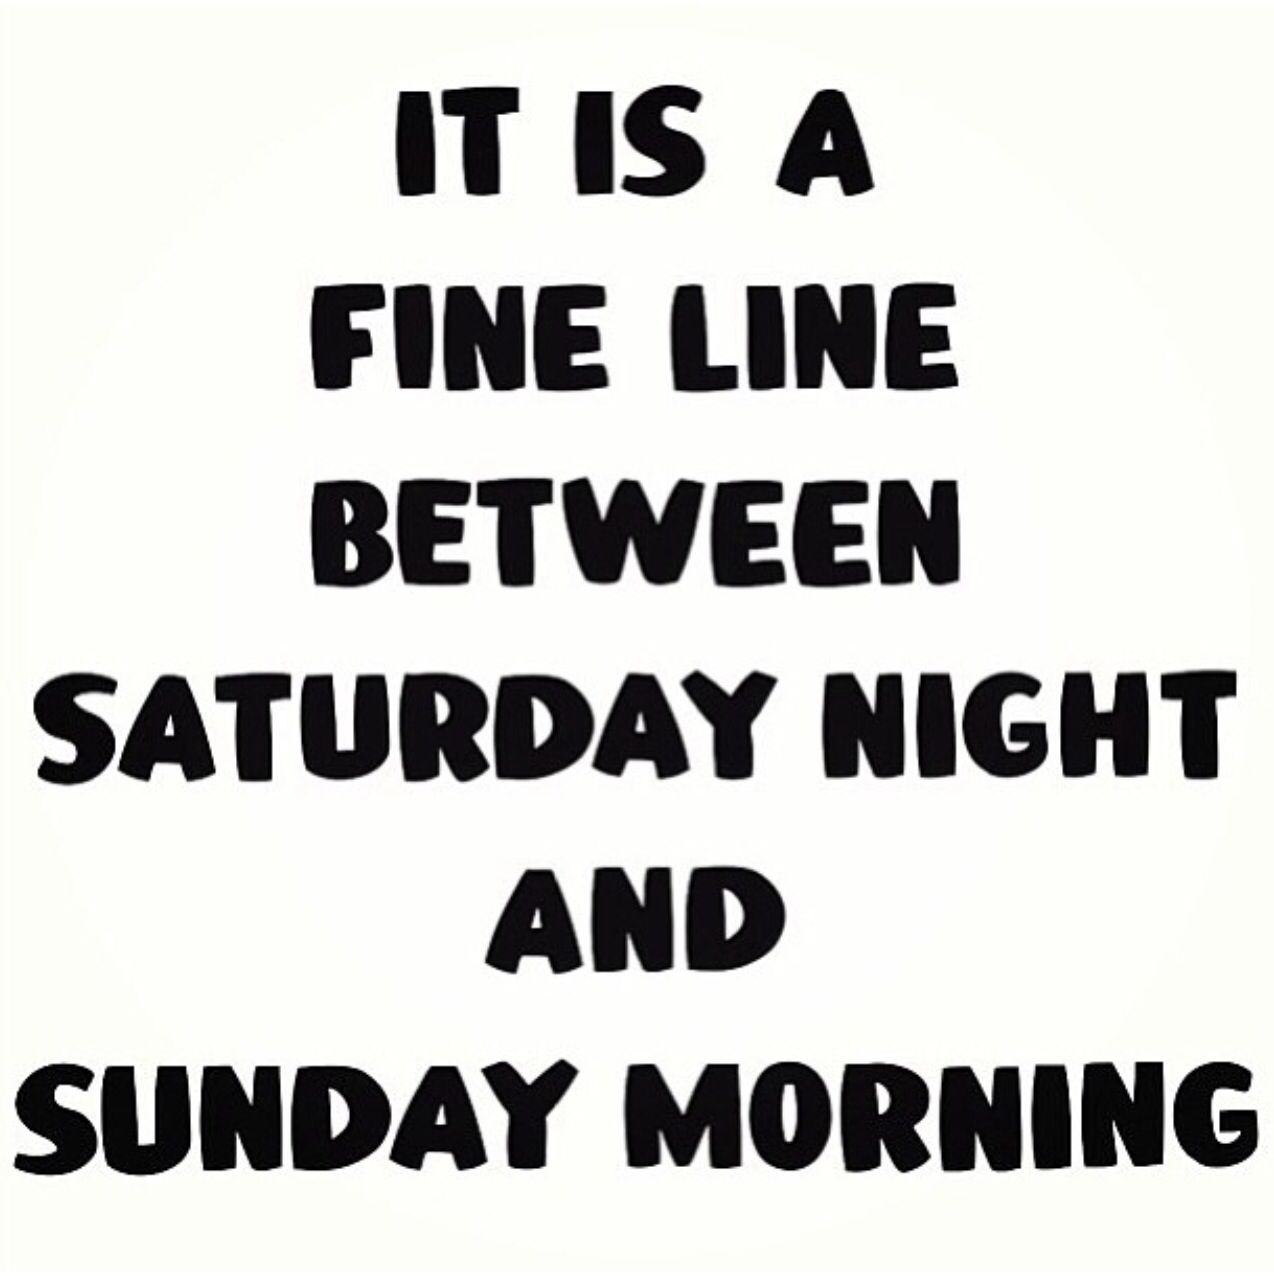 Saturday Night Out Quotes: Saturday Night Quote!